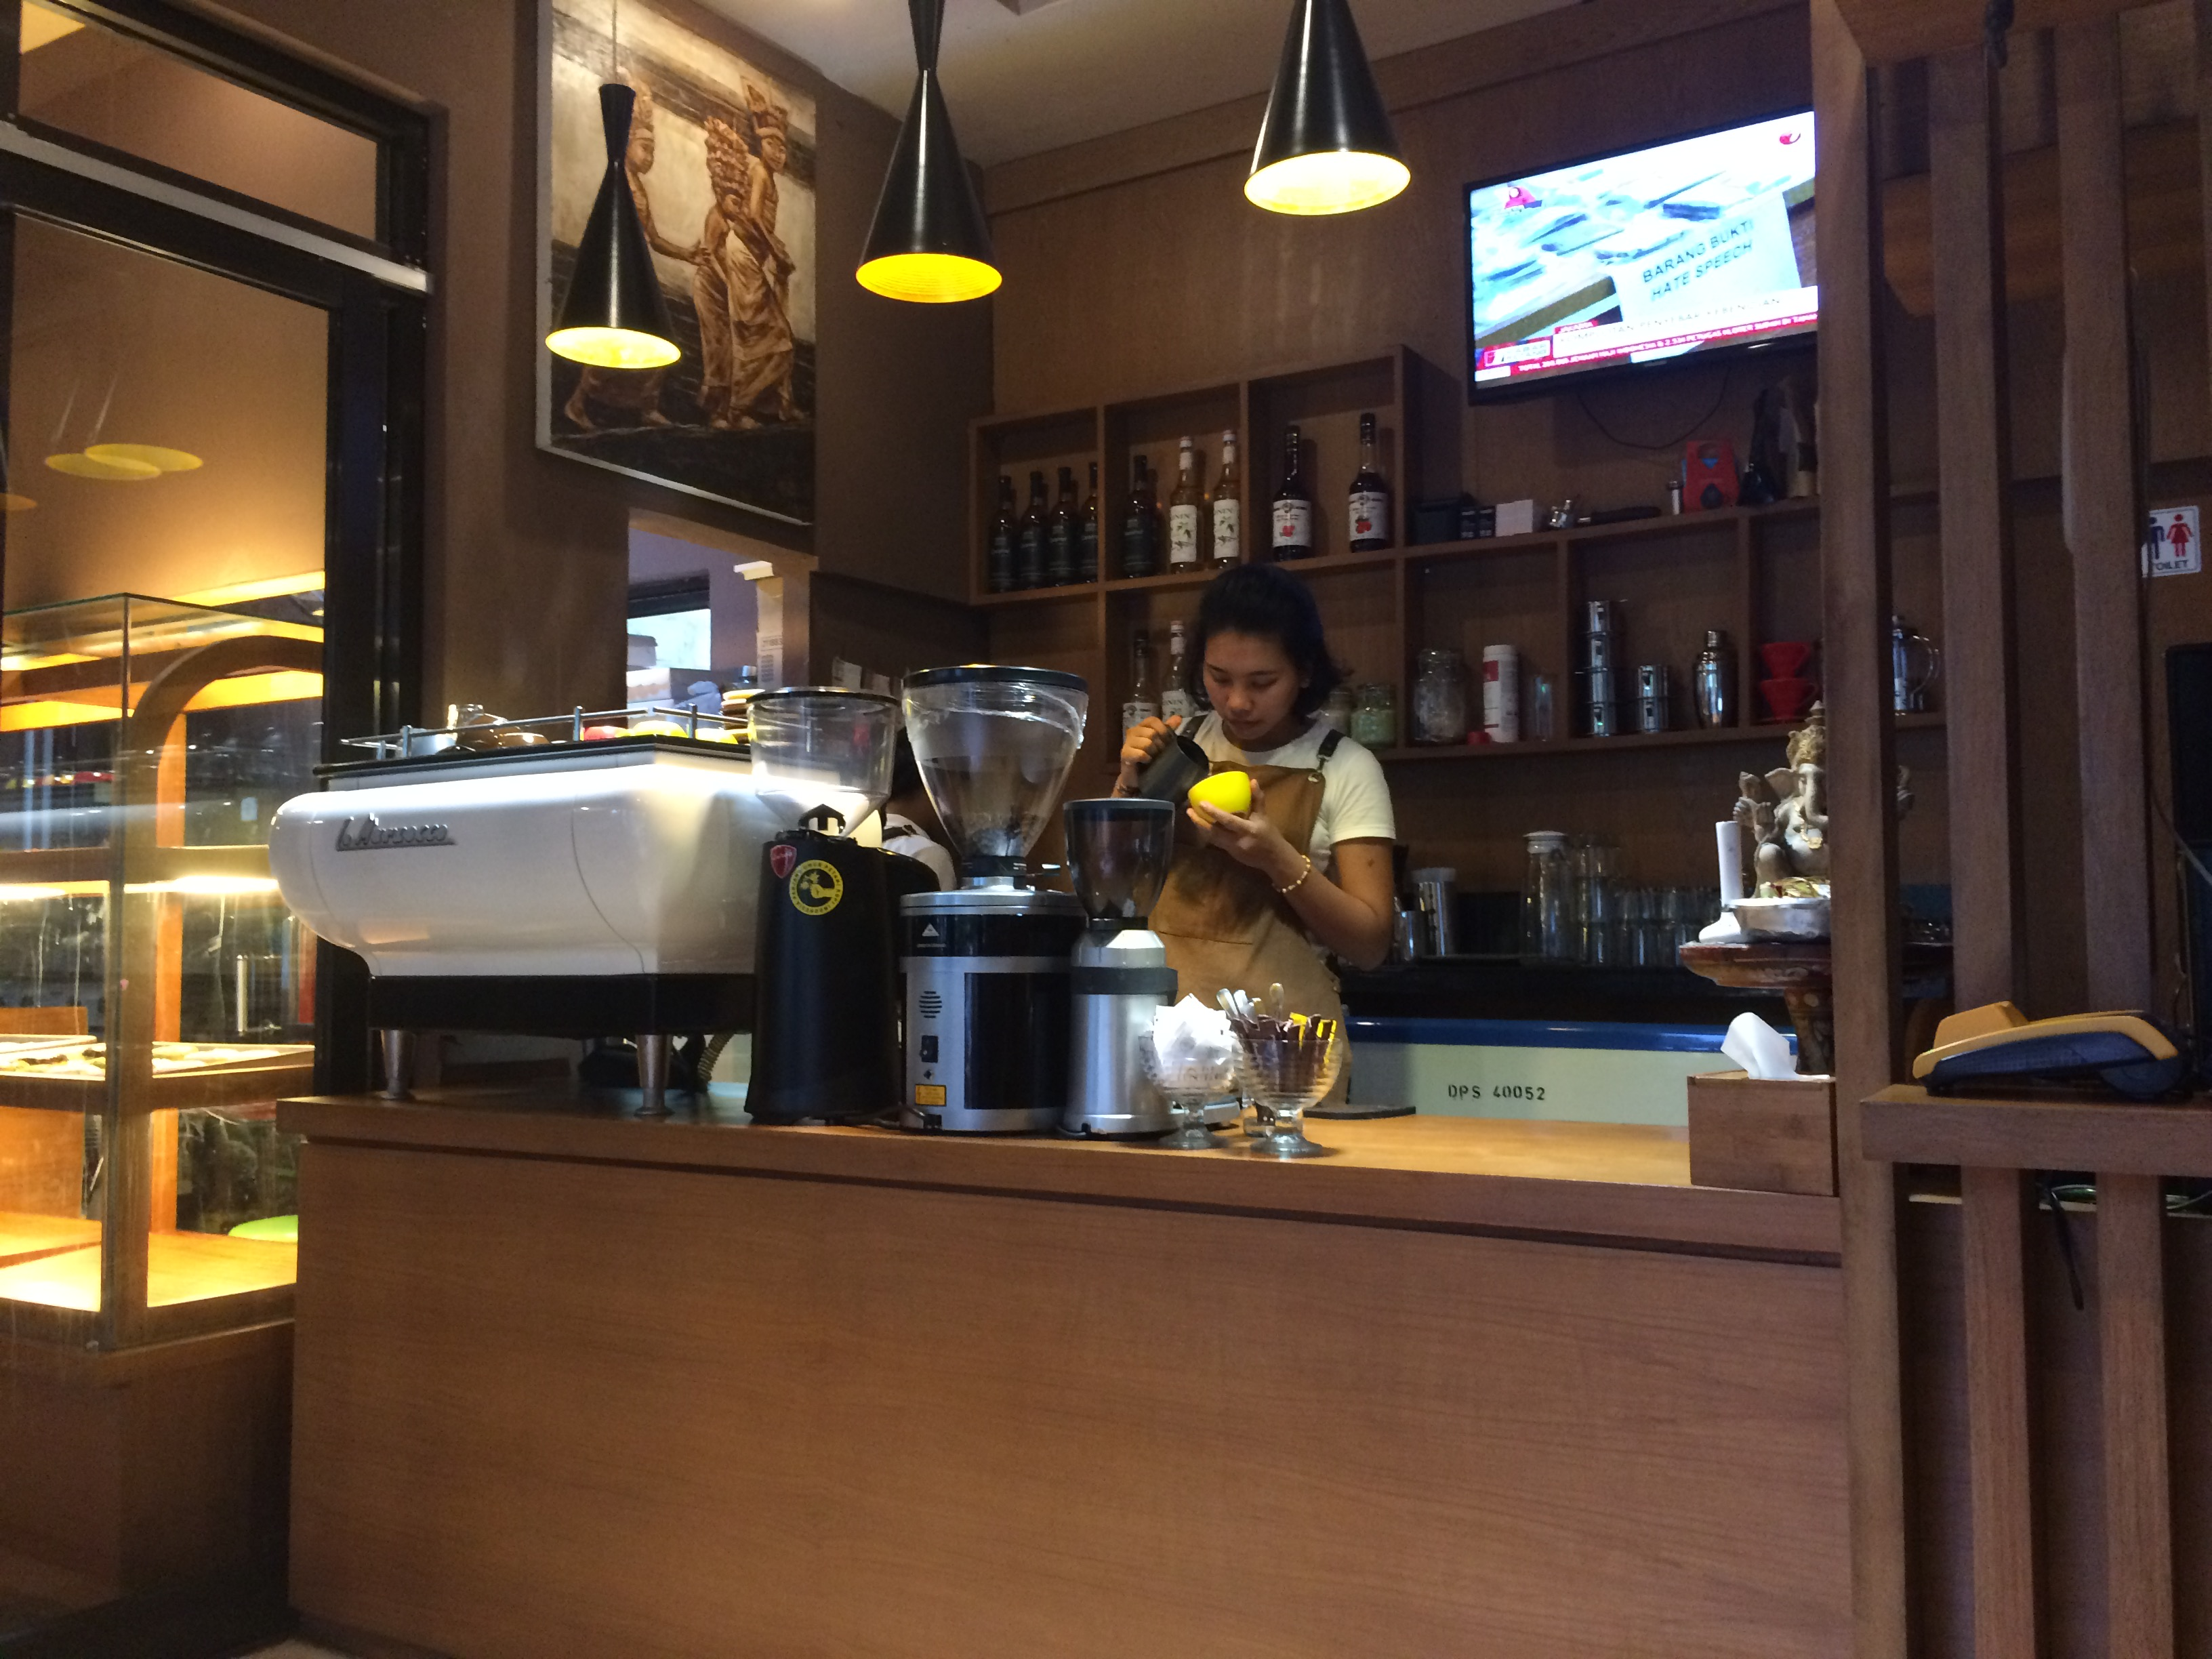 papilas coffeee house klungkung